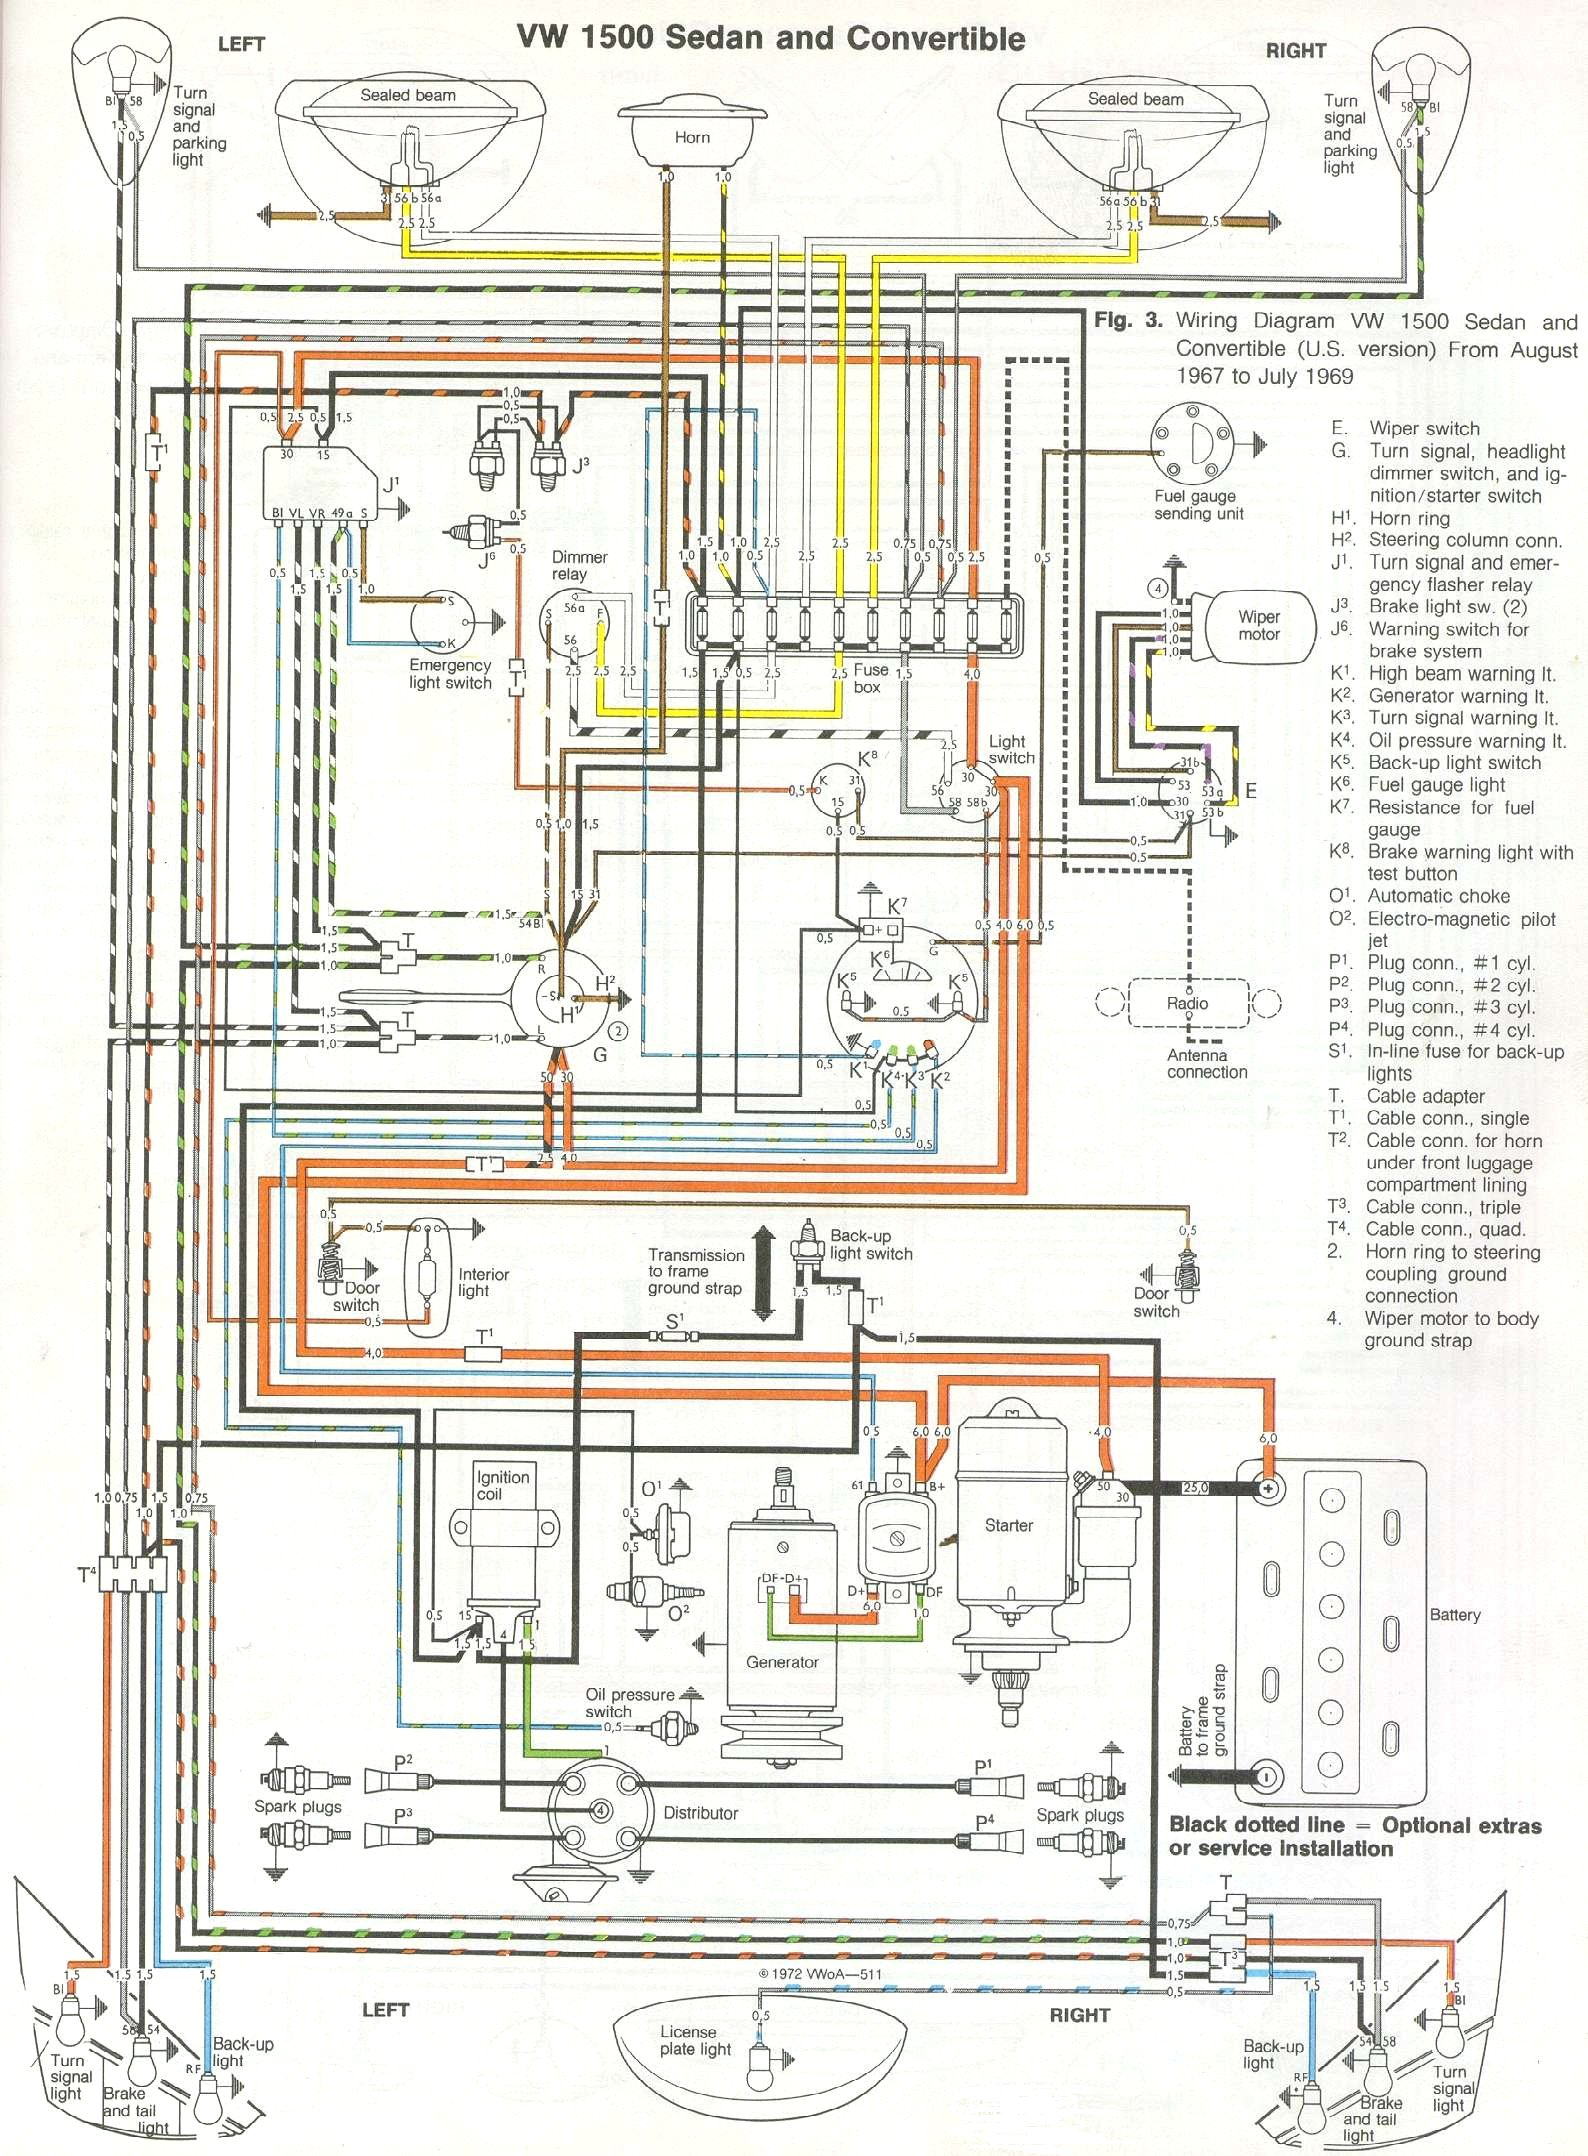 bug_6869 1973 vw beetle wiring diagram 1971 vw beetle wiring diagram  at reclaimingppi.co